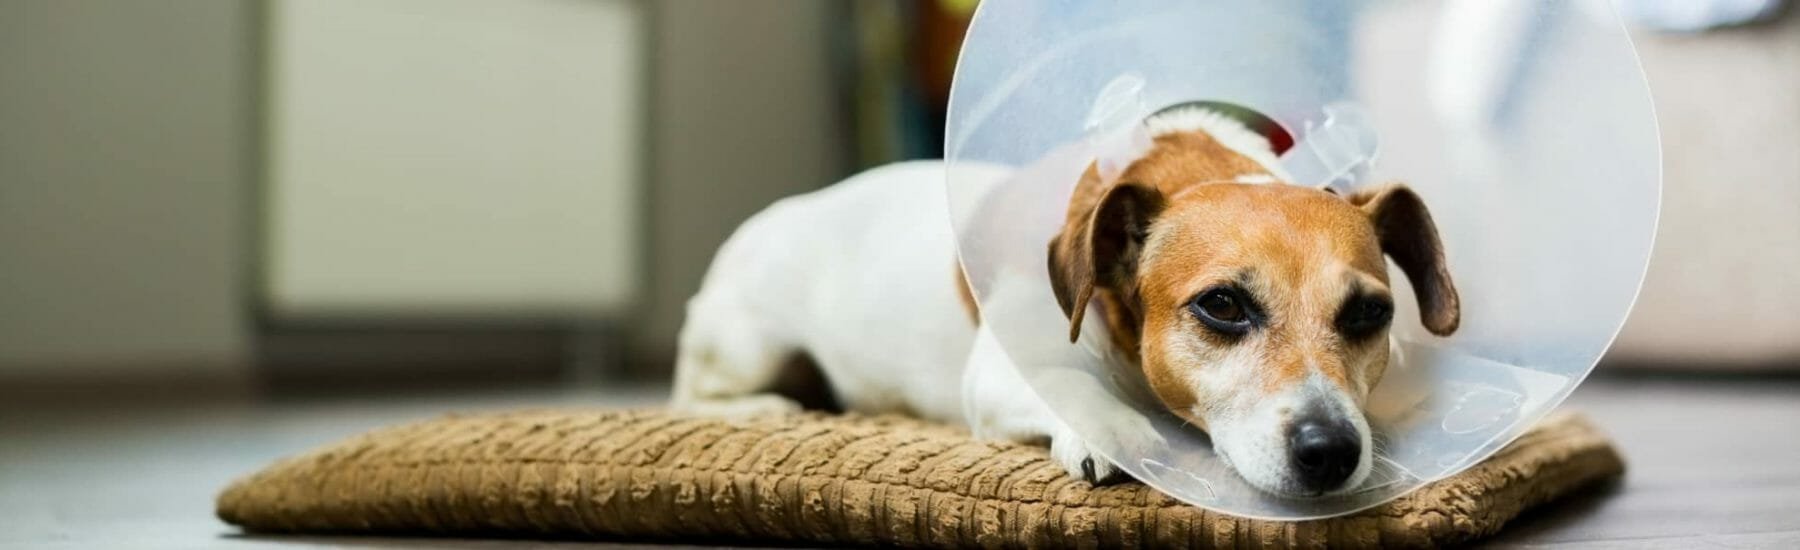 Small brown and white dog laying on a pillow with a surgery cone on head